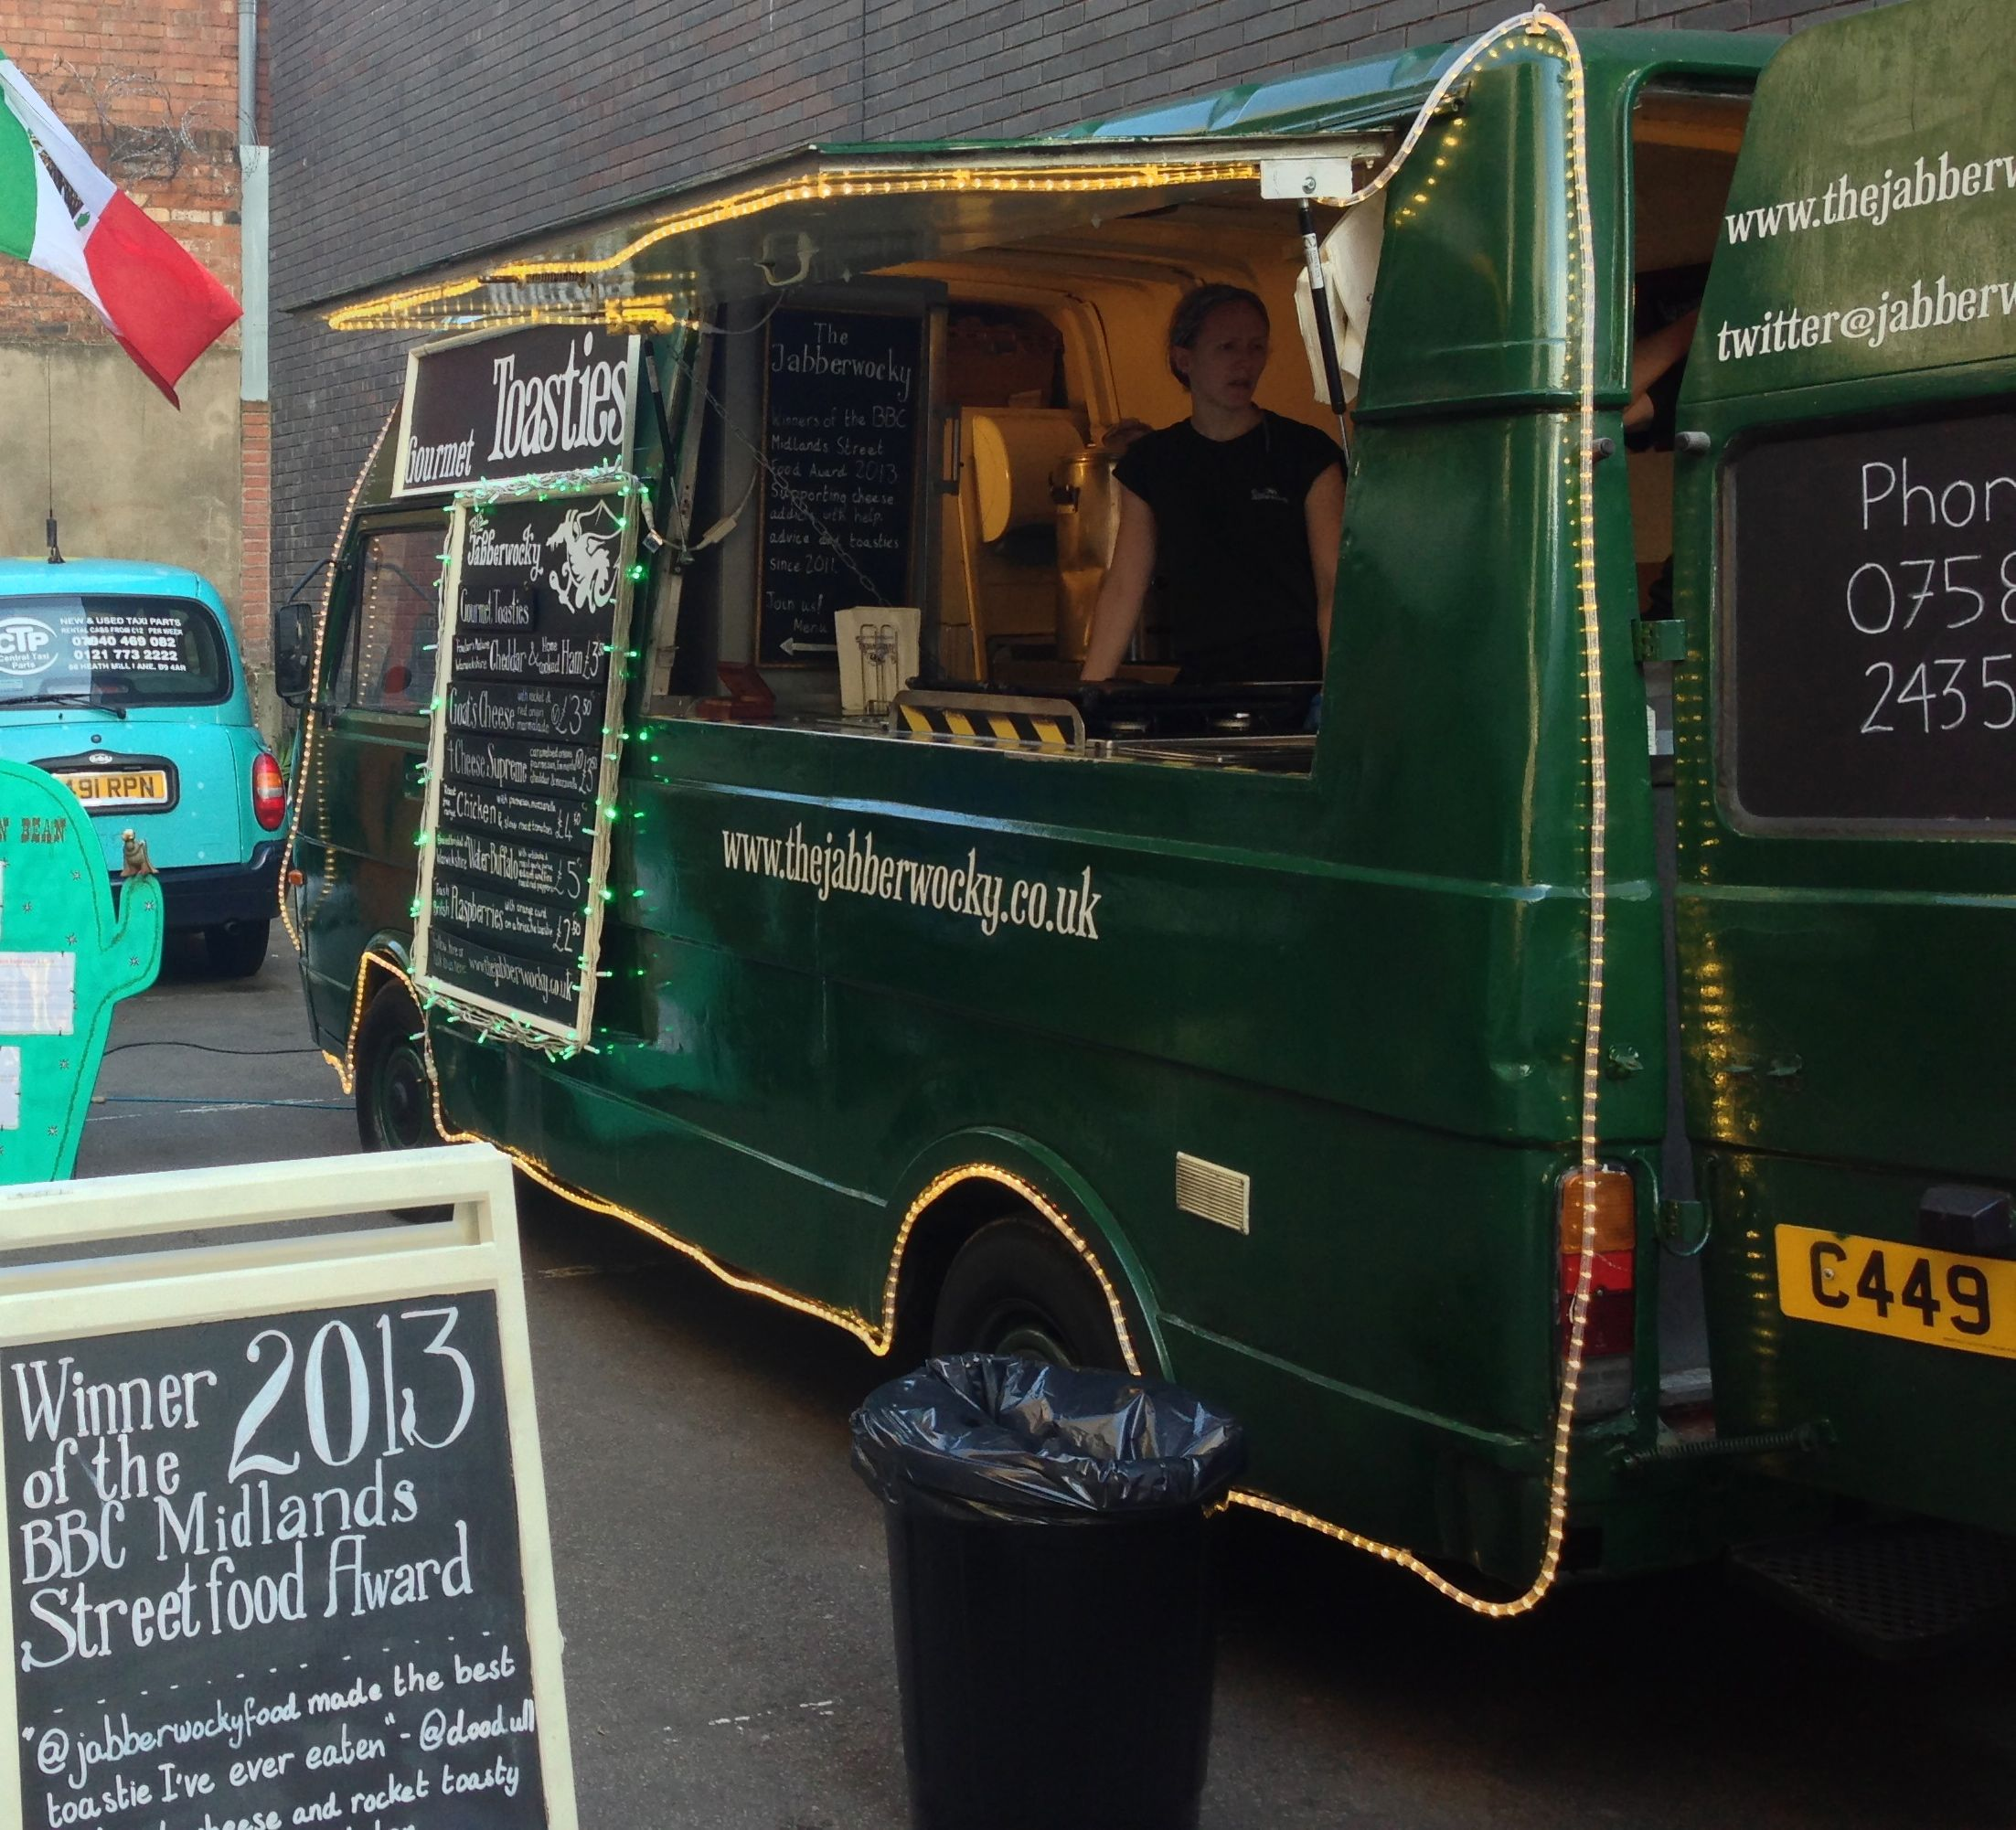 The Jabberwocky Street Food